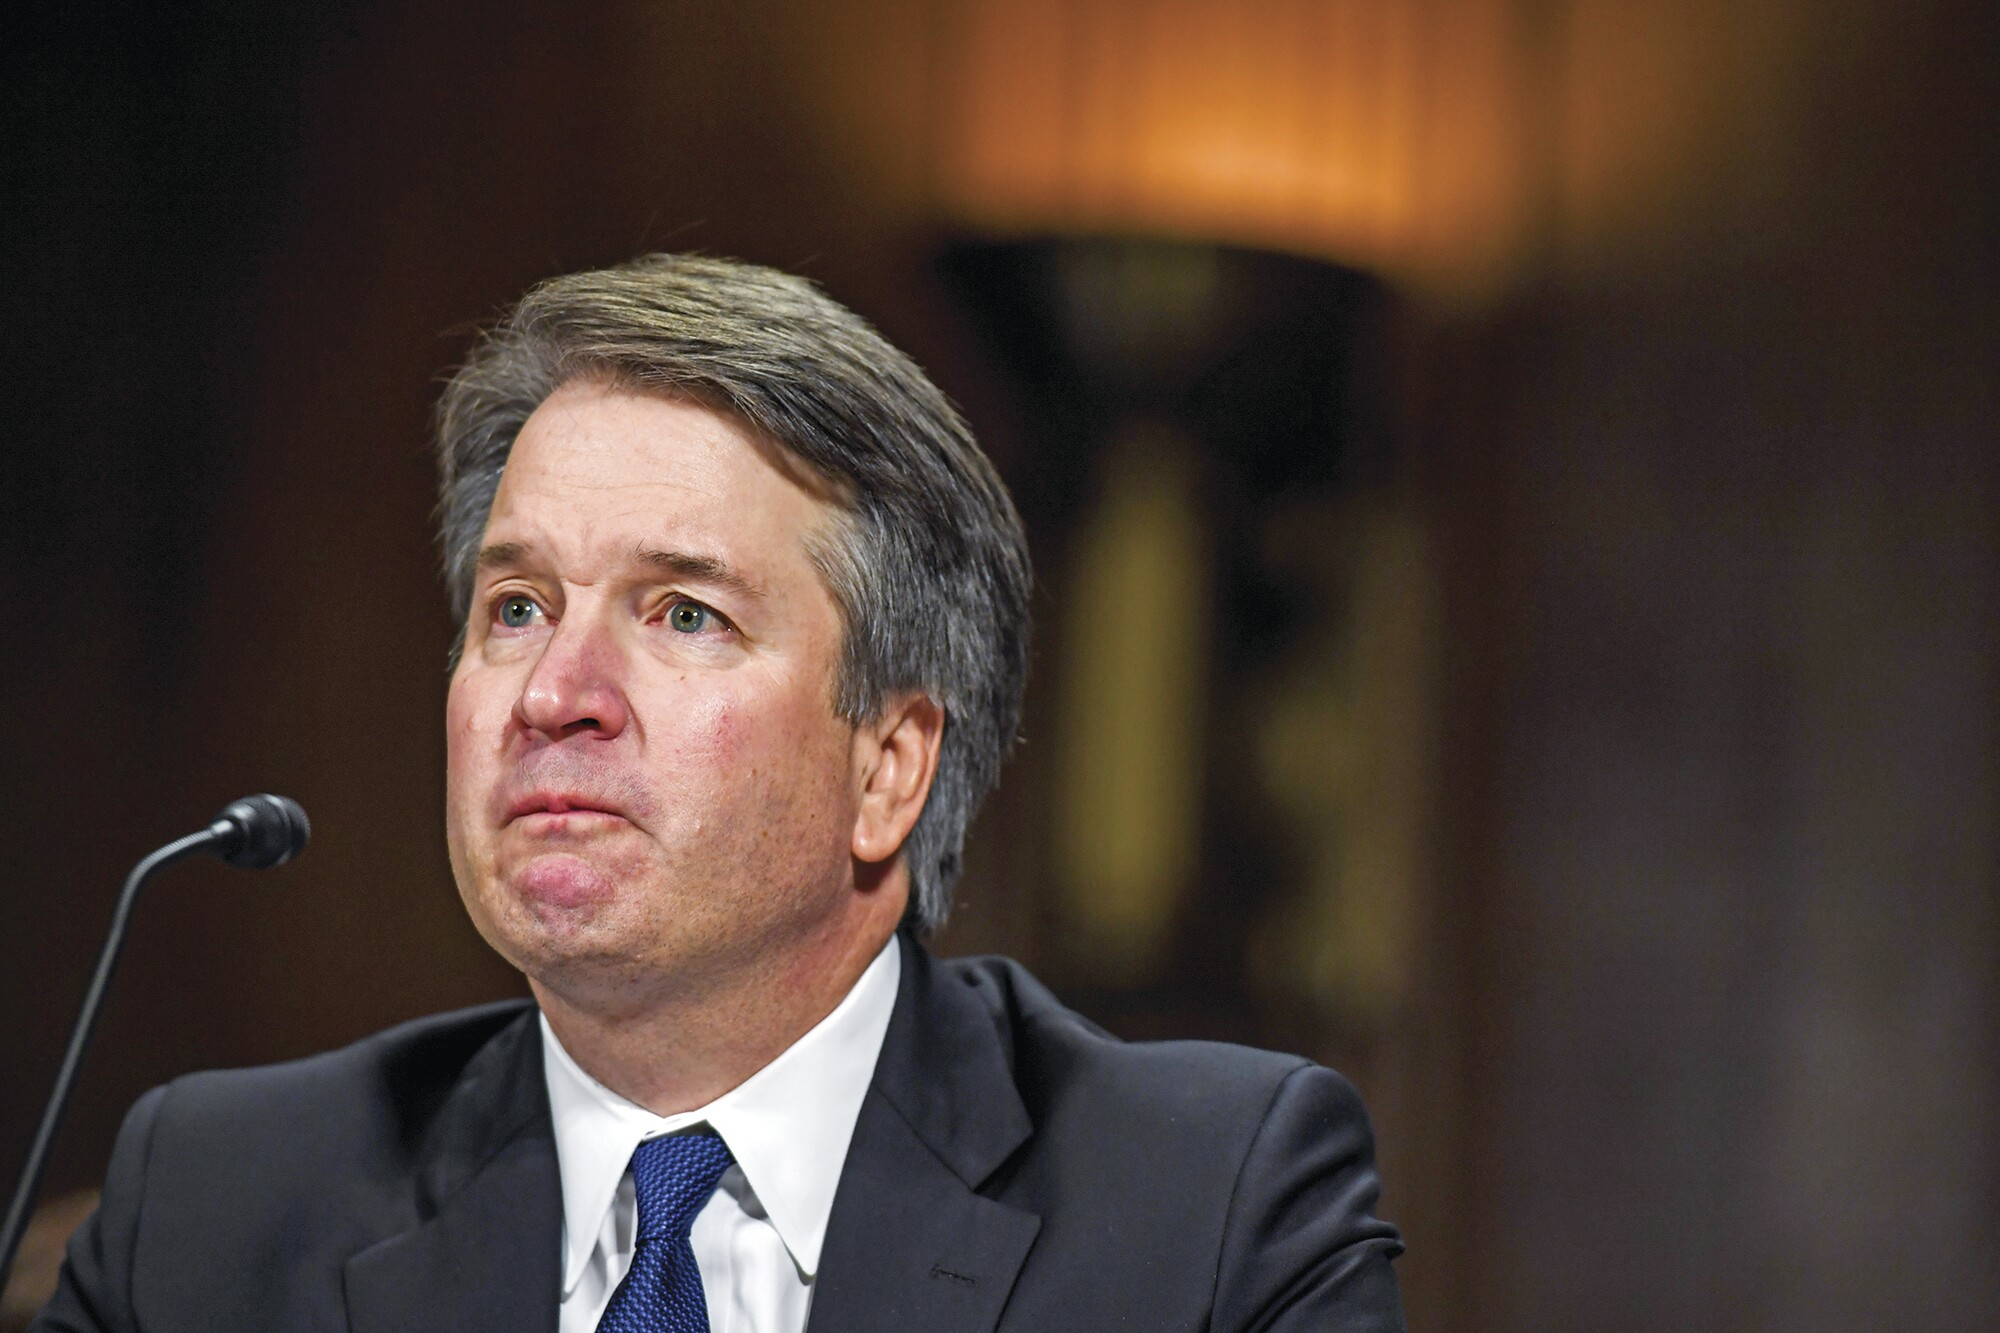 The Lasting Damage of the Kavanaugh Confirmation Battle